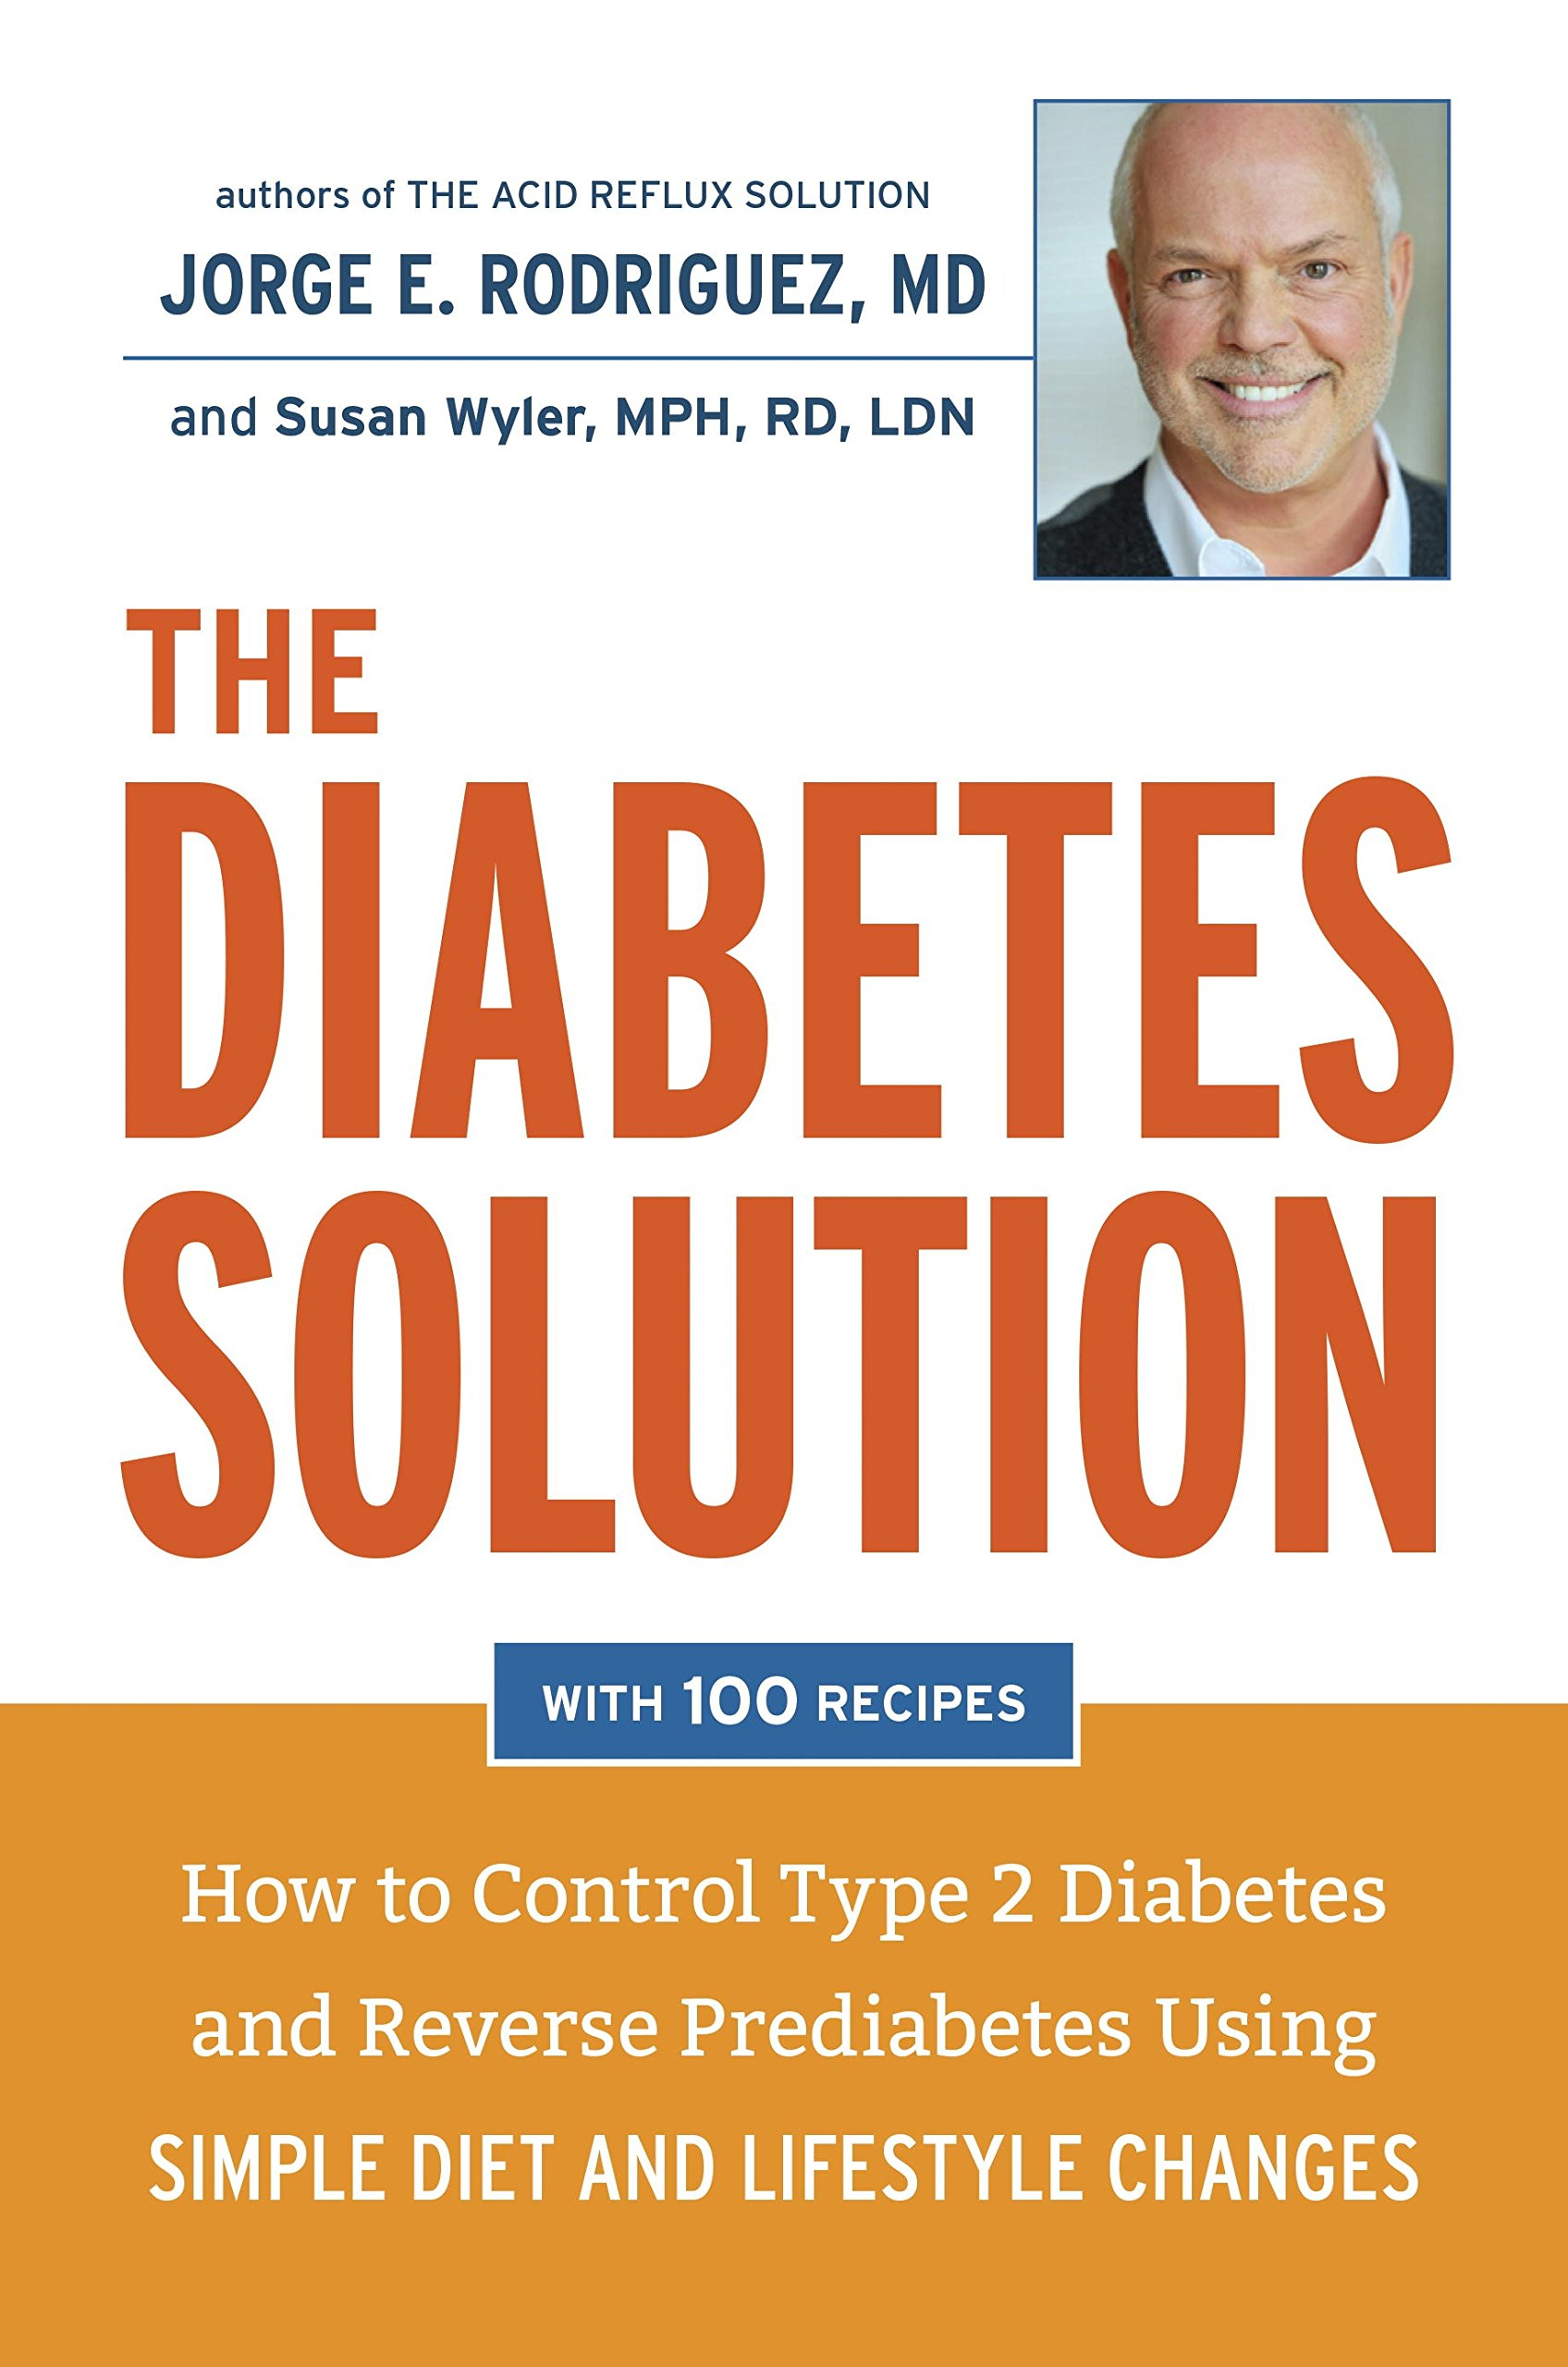 Diabetes Solution Prediabetes Lifestyle Changes product image